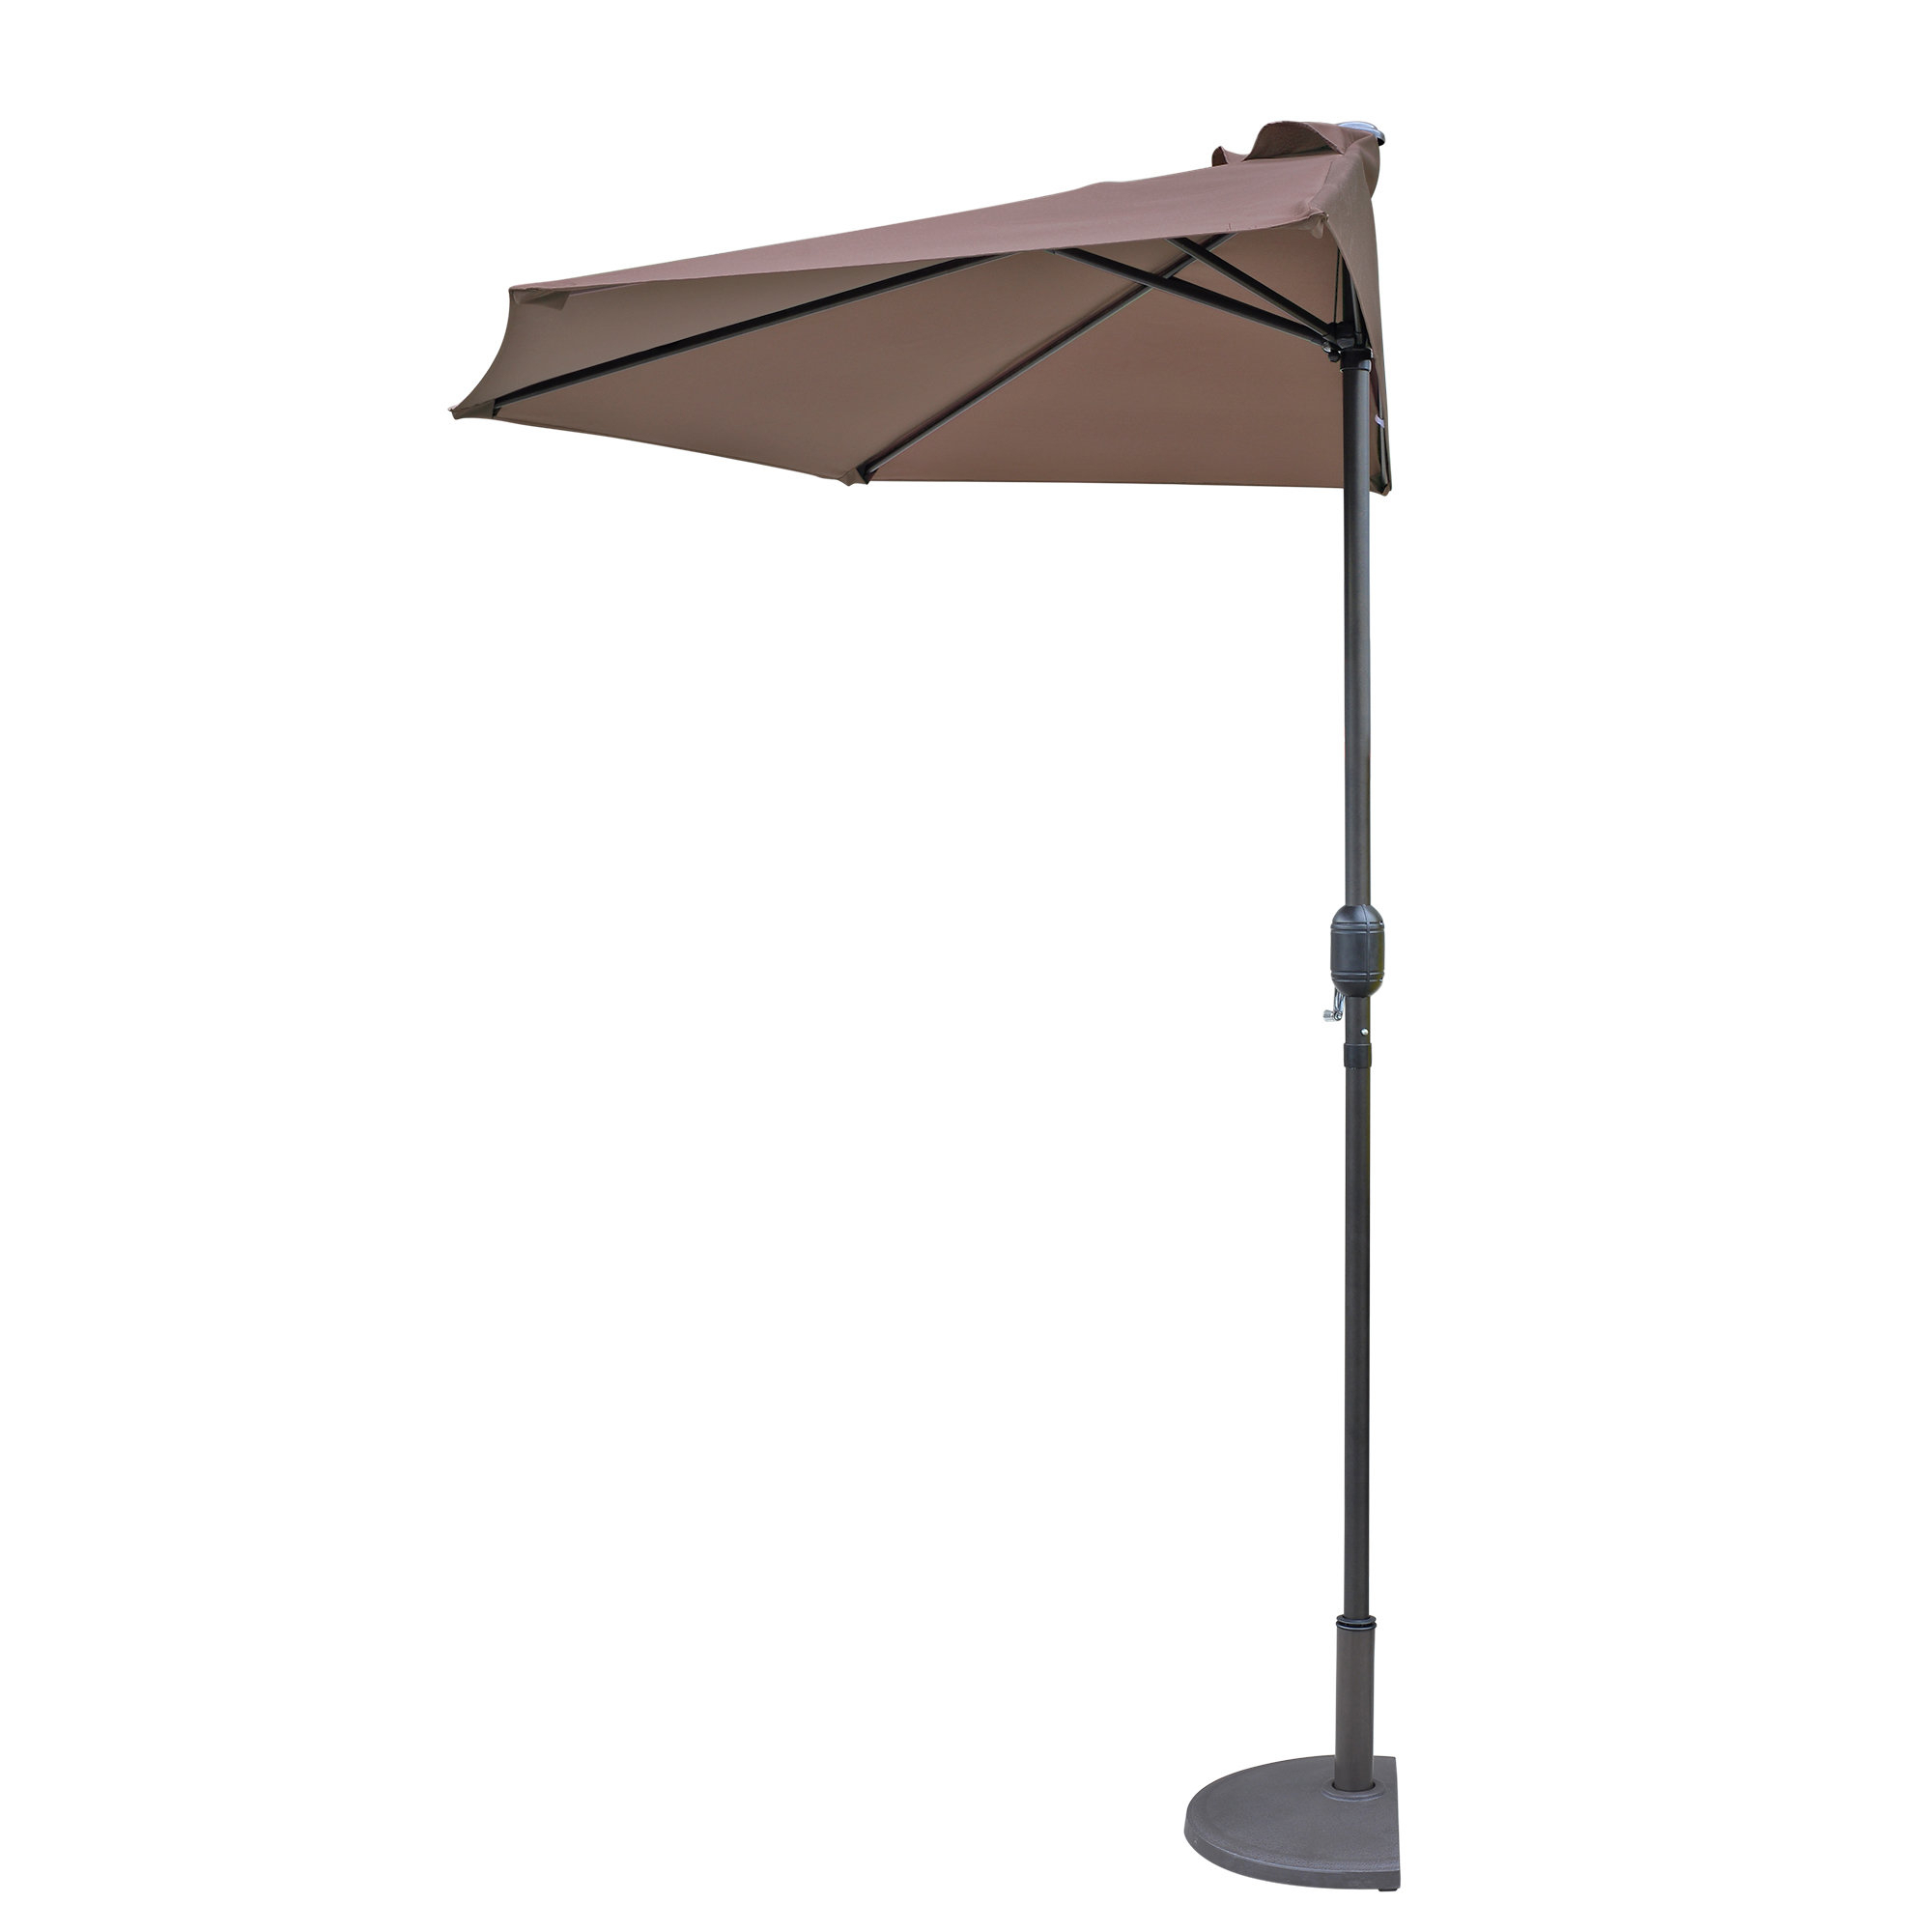 Newest Lanai 8.75' Market Umbrella For Monty Market Umbrellas (Gallery 2 of 20)